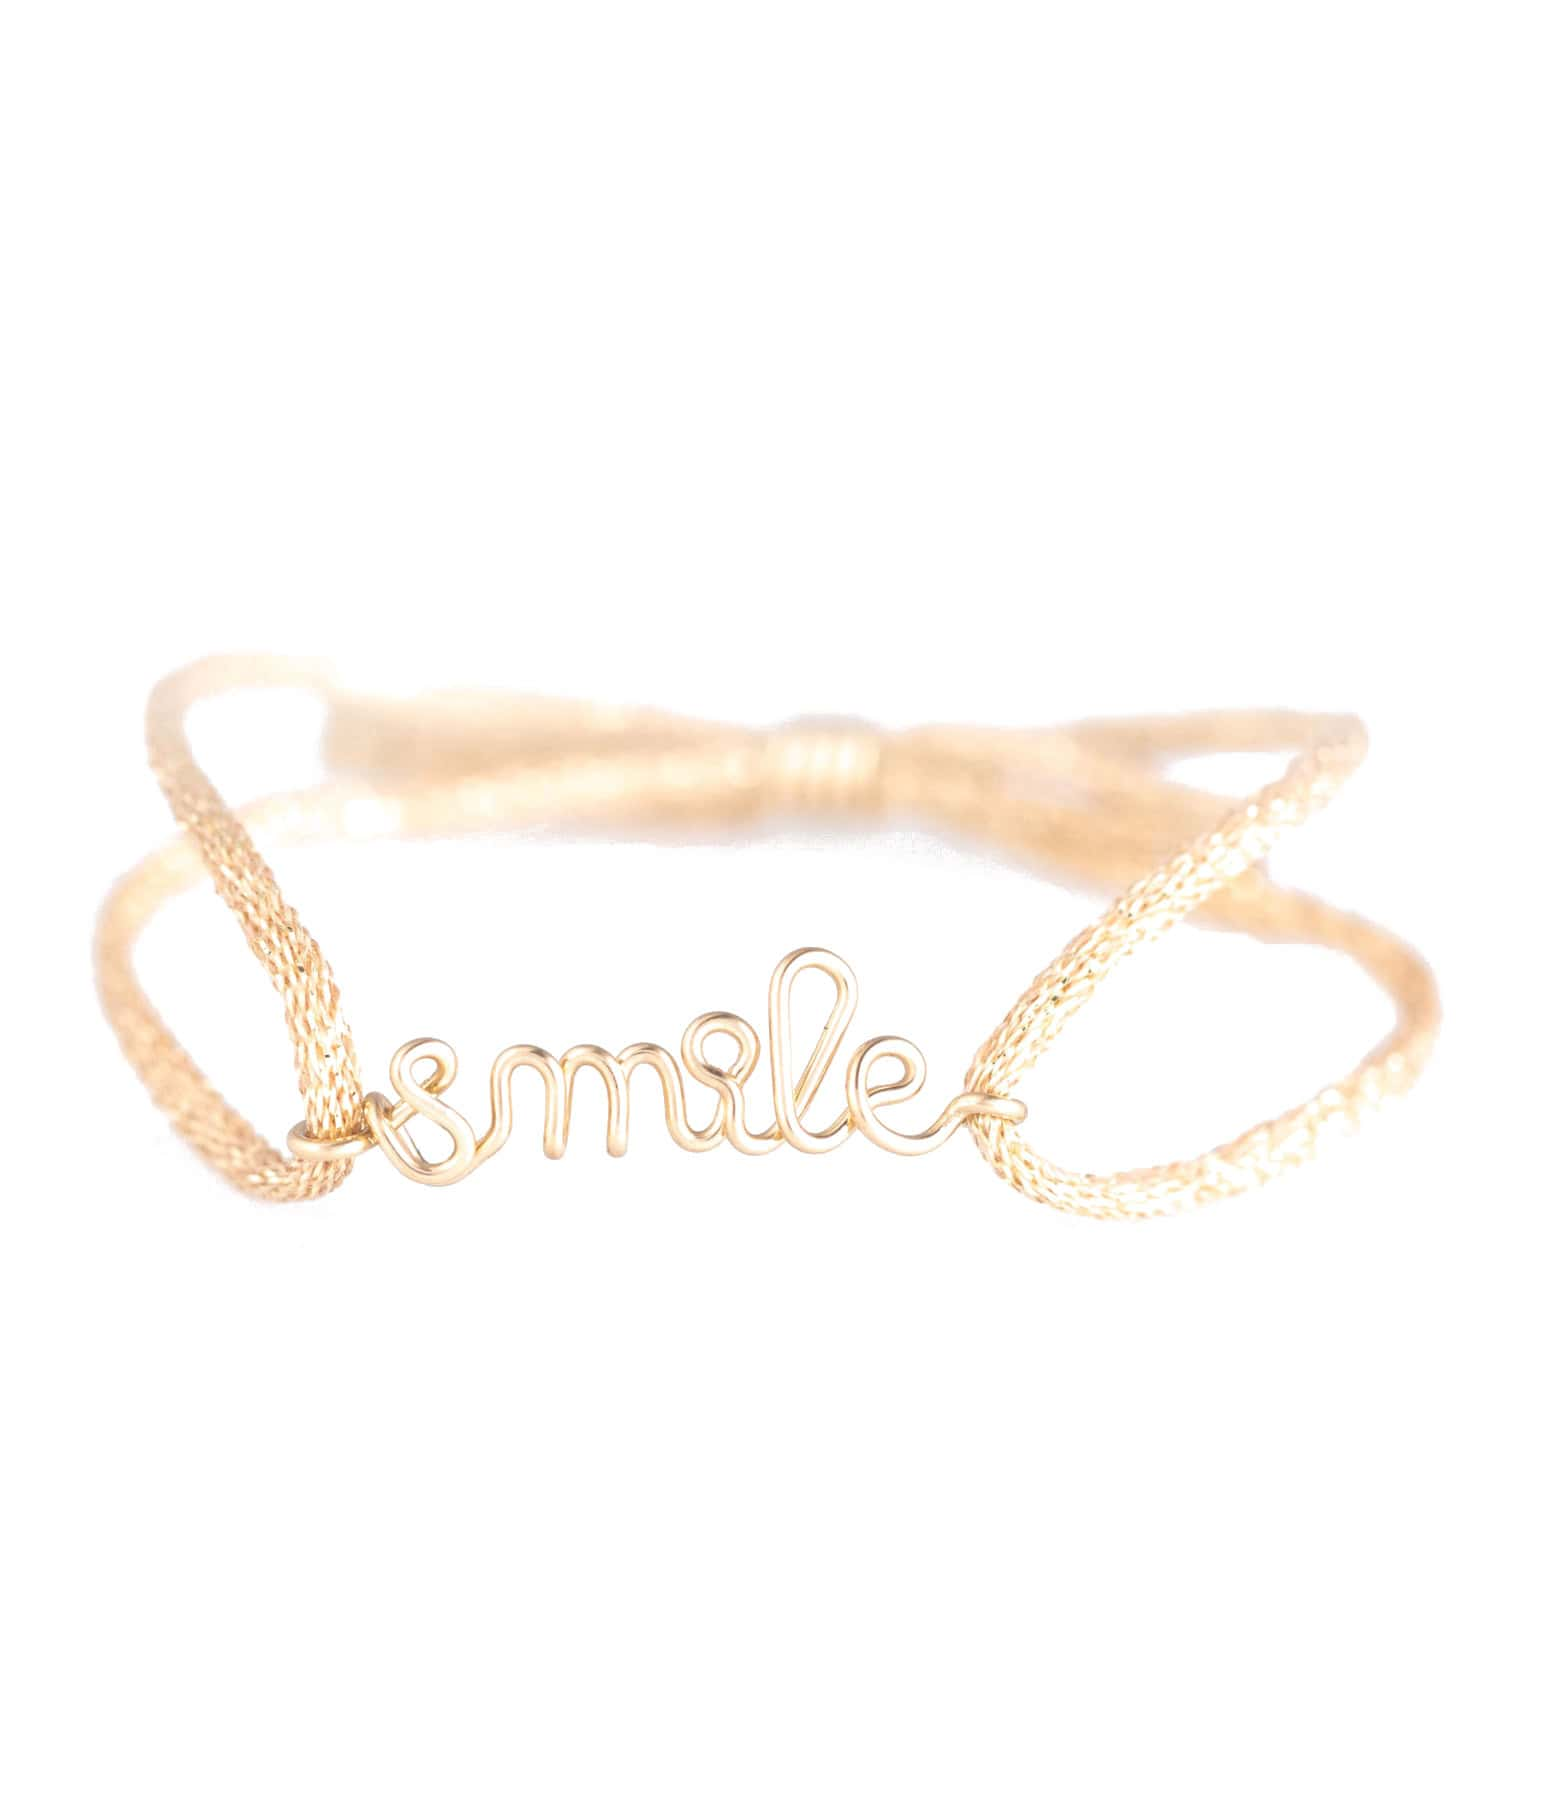 ATELIER PAULIN - Bracelet Cordon Lurex Enfant Smile Gold Filled